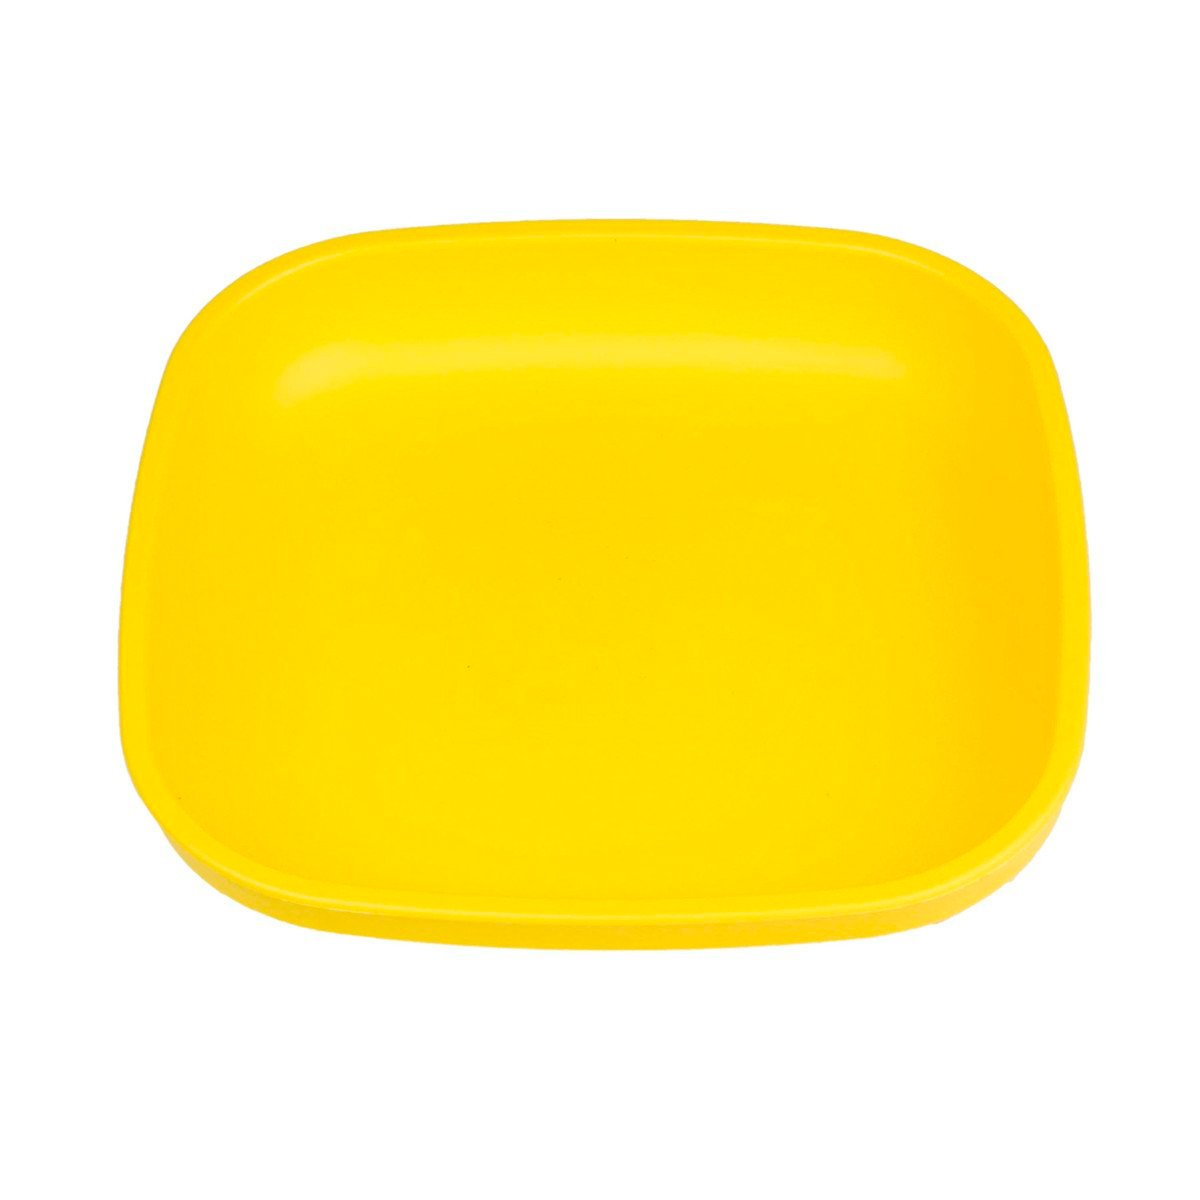 Replay Plate Replay Dinnerware Yellow at Little Earth Nest Eco Shop